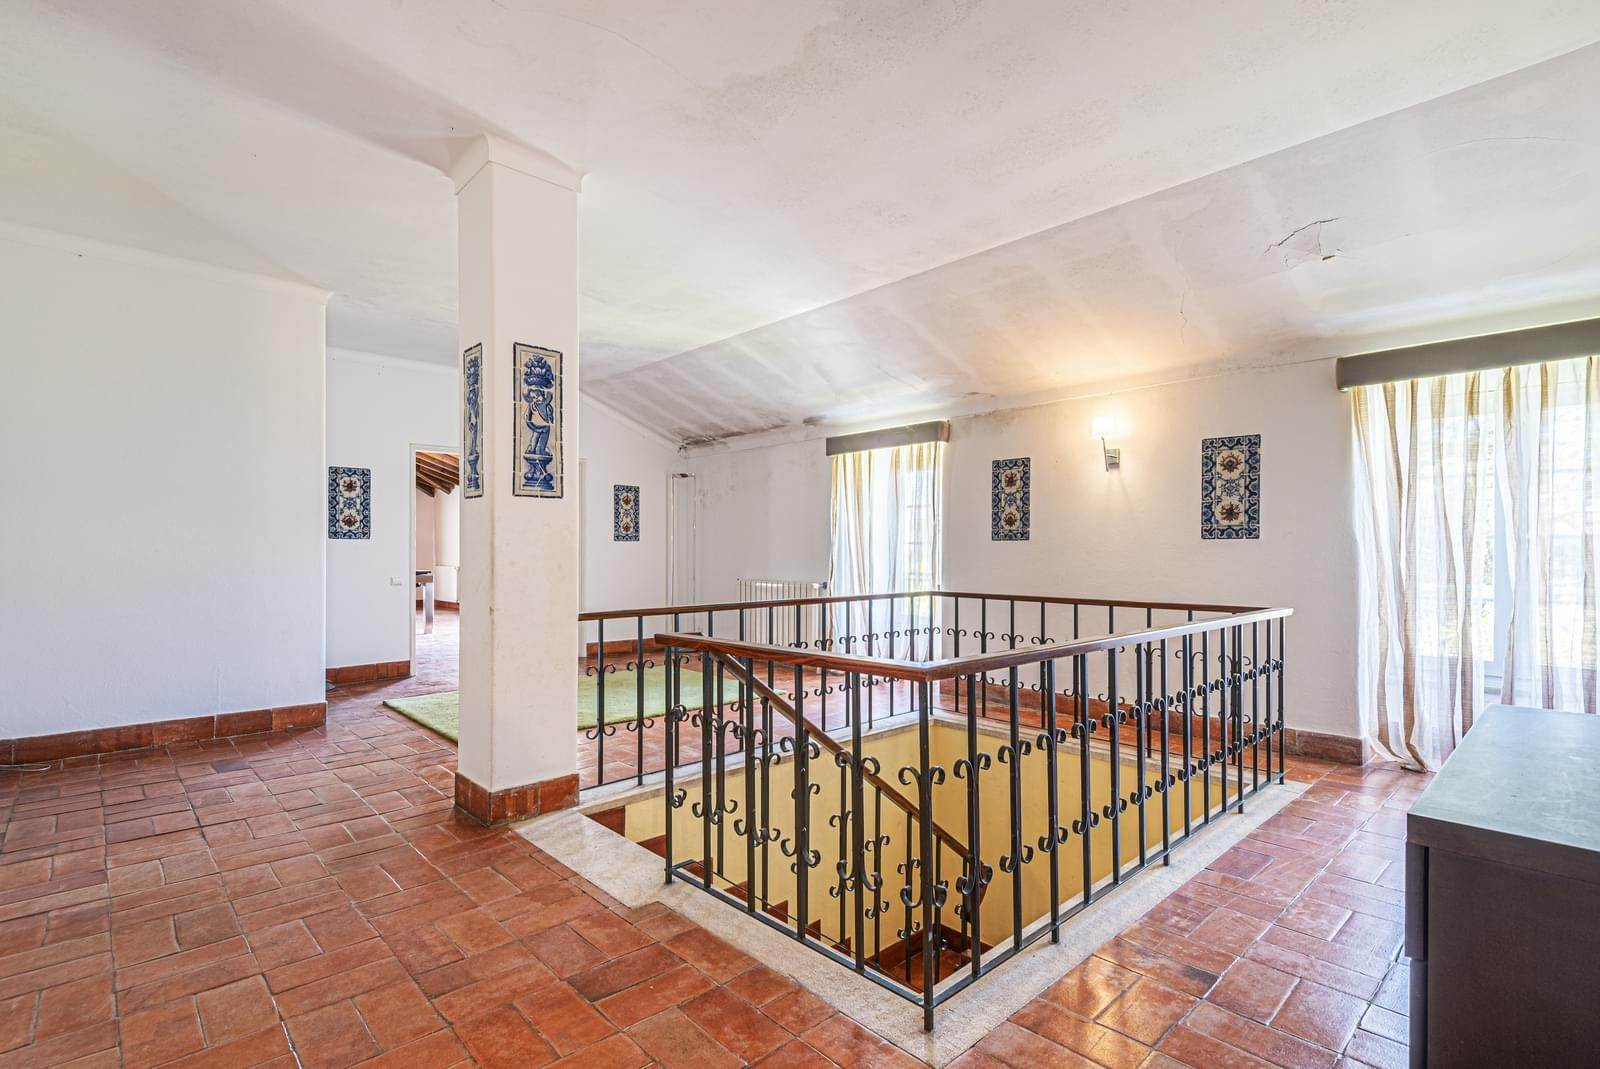 35. Villa/Townhouse for Sale at 9 bedroom villa, located in a quiet area in Cascais, only 8 minutes away, on foot, to the centre of Cascais.The villa is... Cascais, Portugal